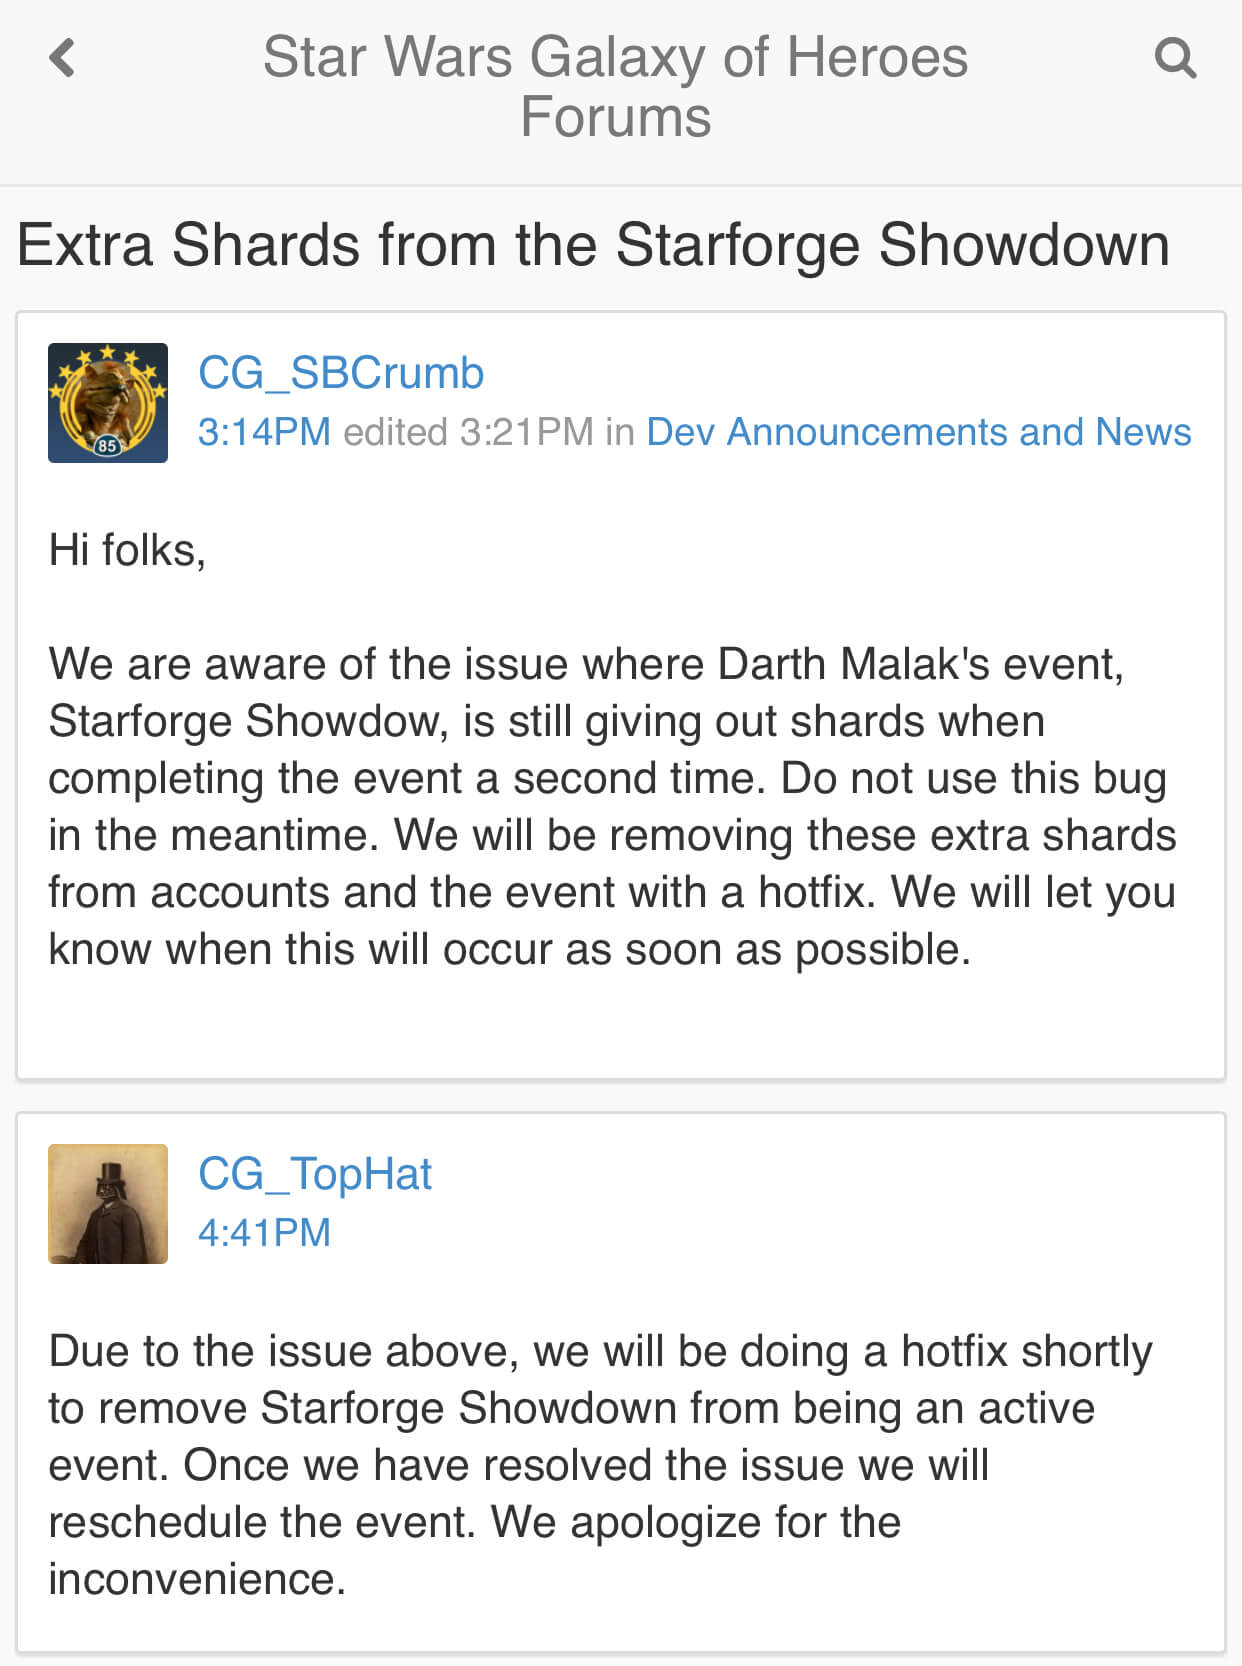 https://forums.galaxy-of-heroes.starwars.ea.com/discussion/216160/extra-shards-from-the-starforge-showdown#latest